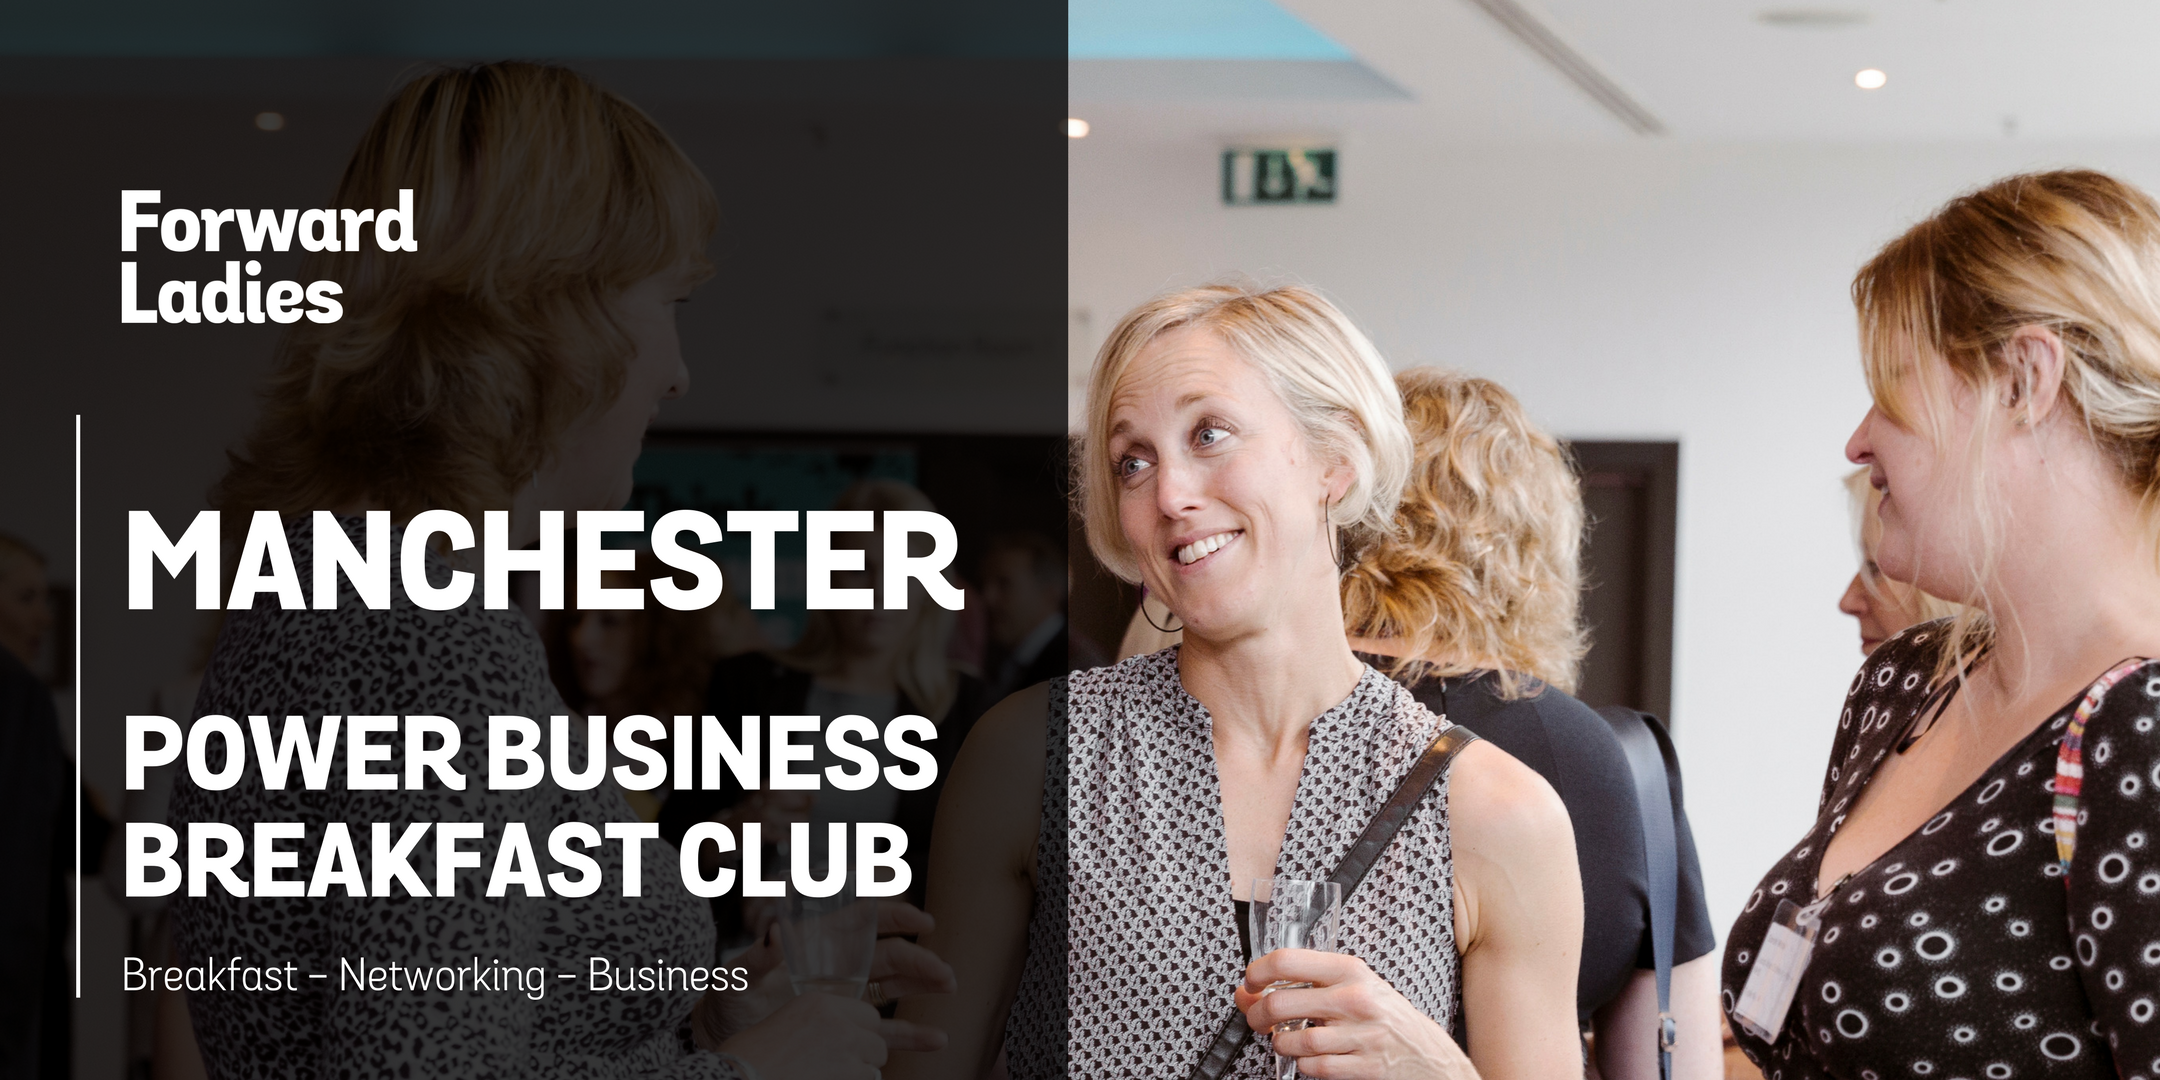 Forward Ladies Manchester Power Business Breakfast Club – December